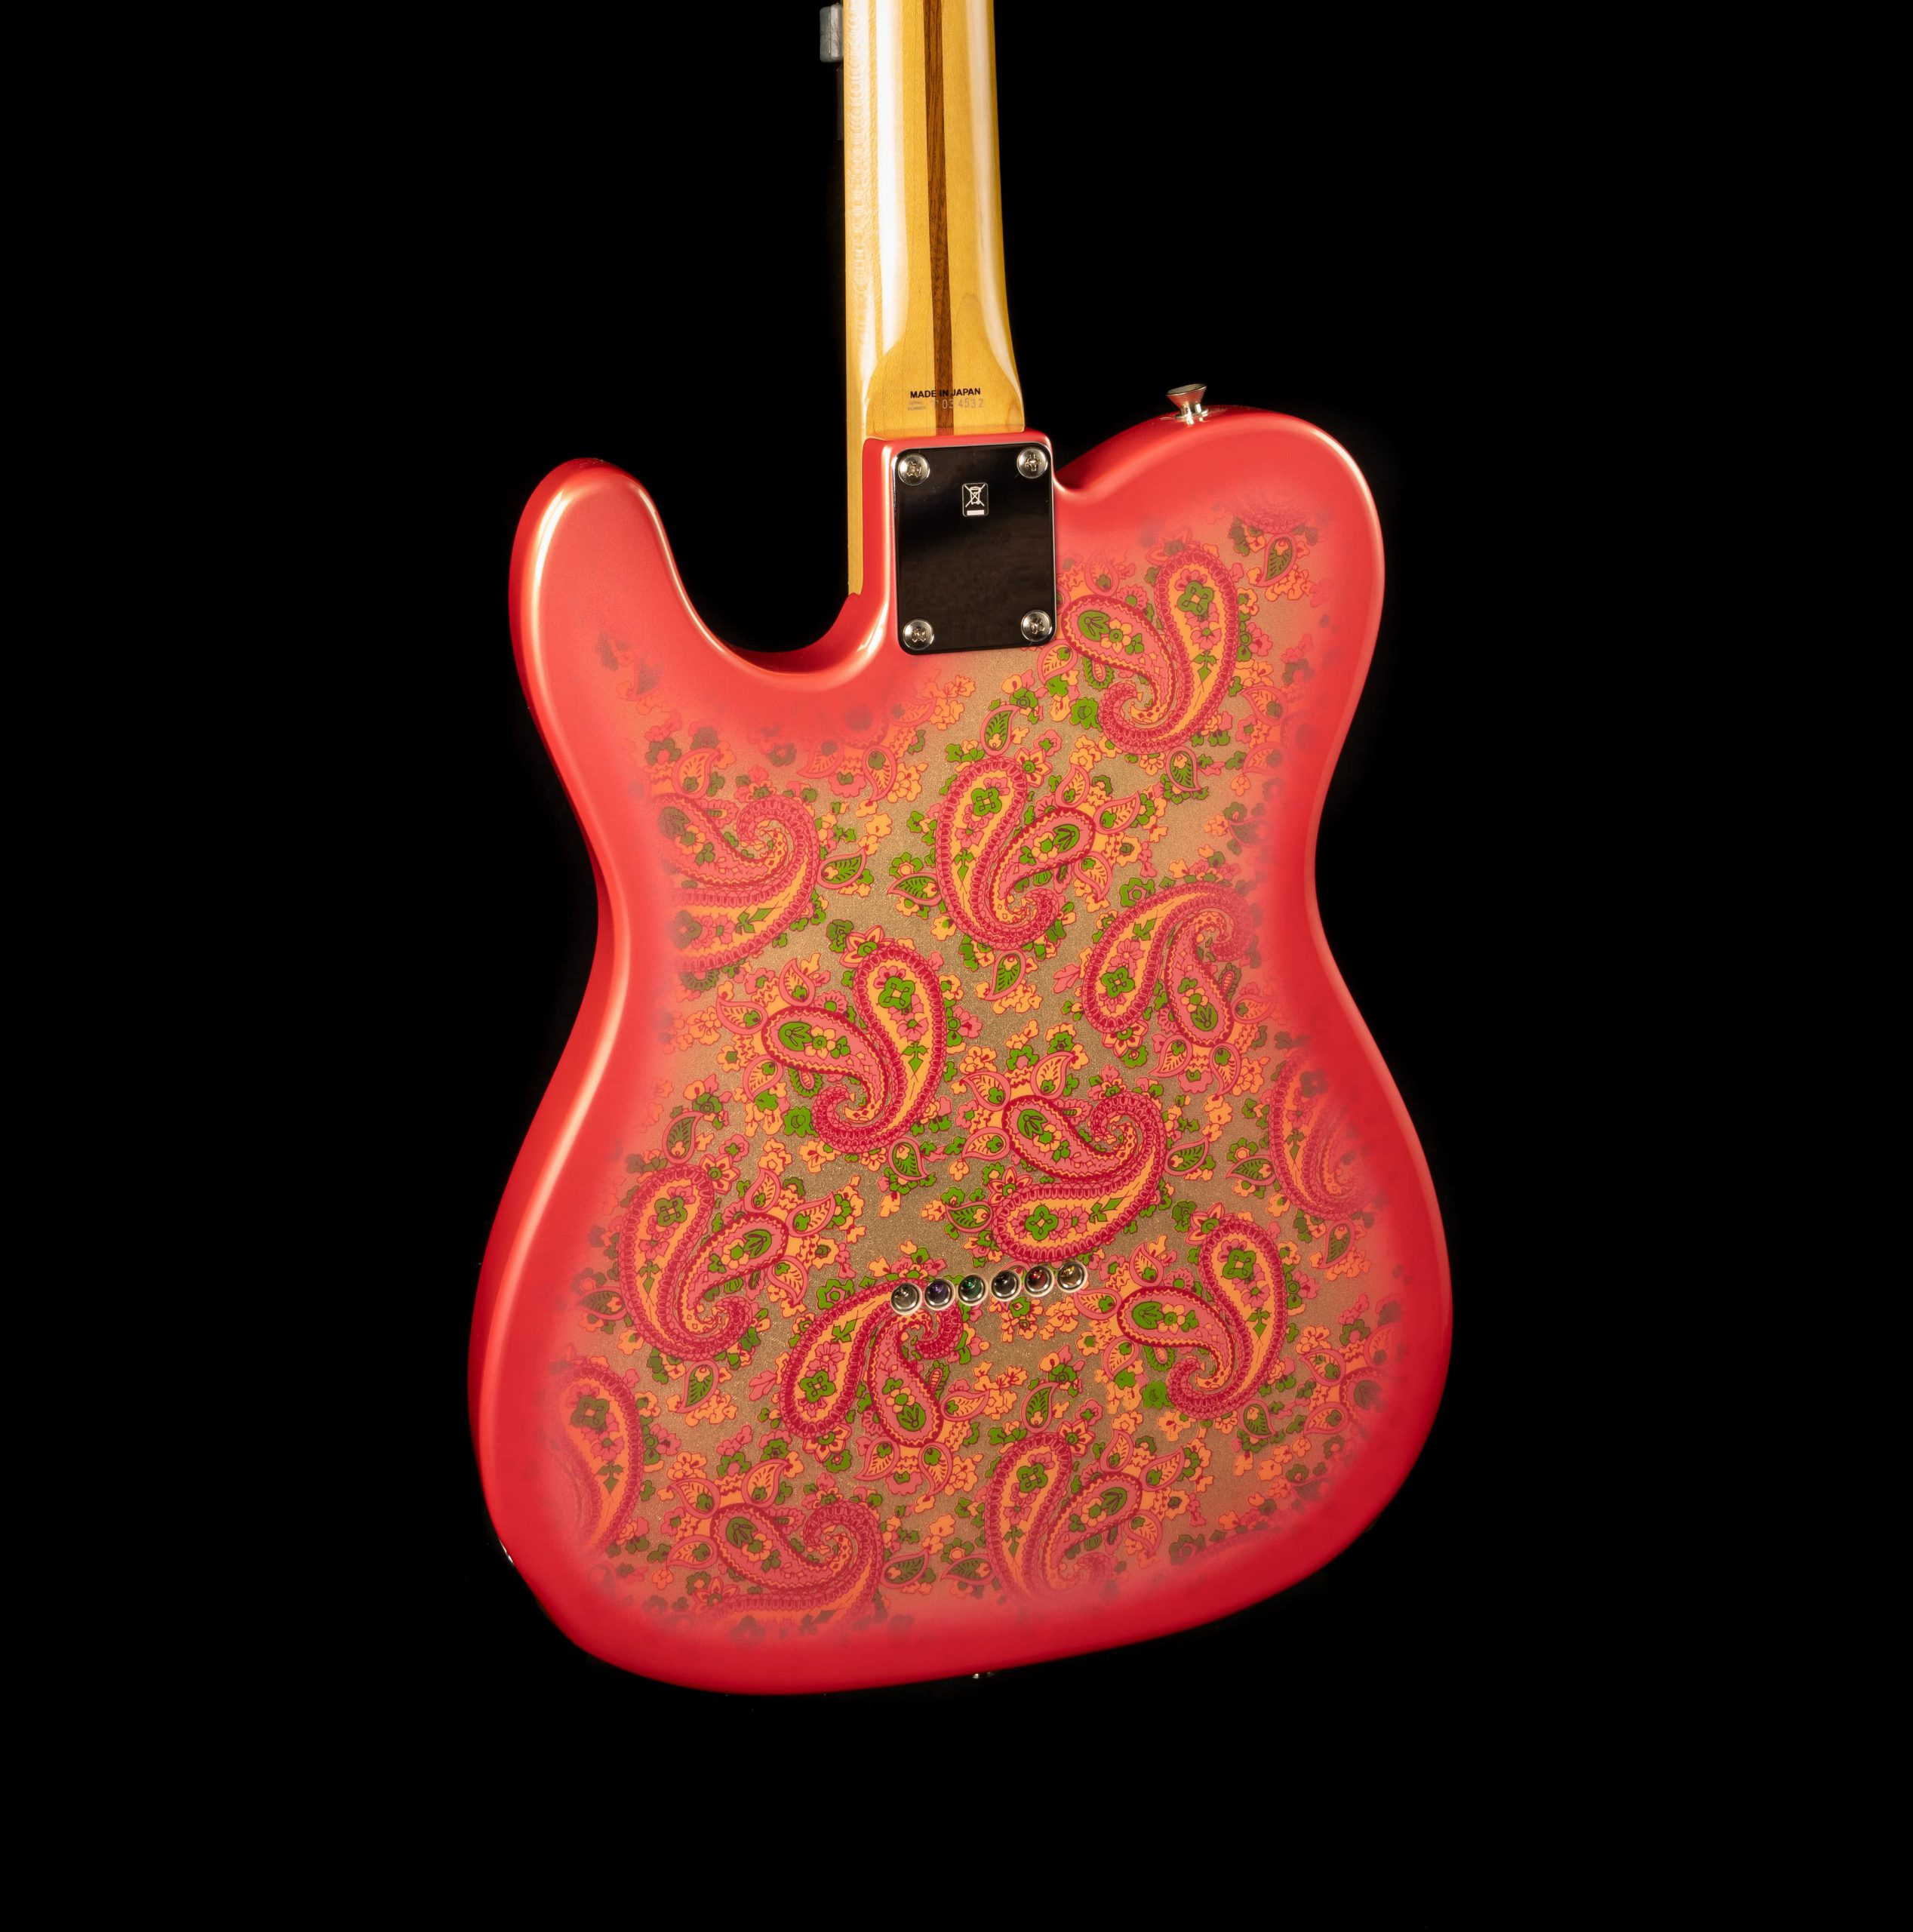 Fender - 2008 - Telecaster in Pink Paisley